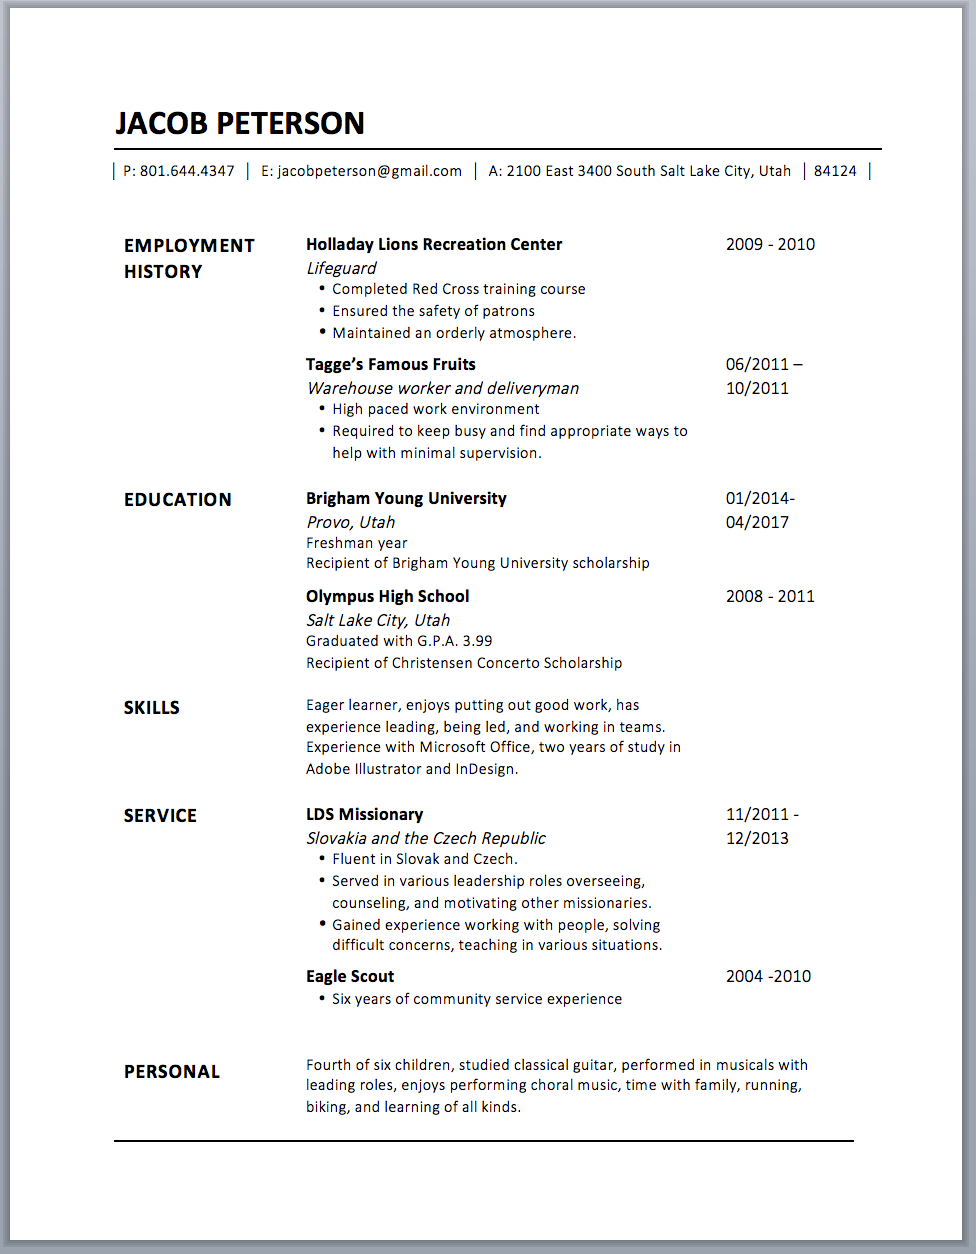 Here I just changed the formatting of Jacob's contact information and added another line at the bottom! Voila! A well-designed resume in 60 minutes.